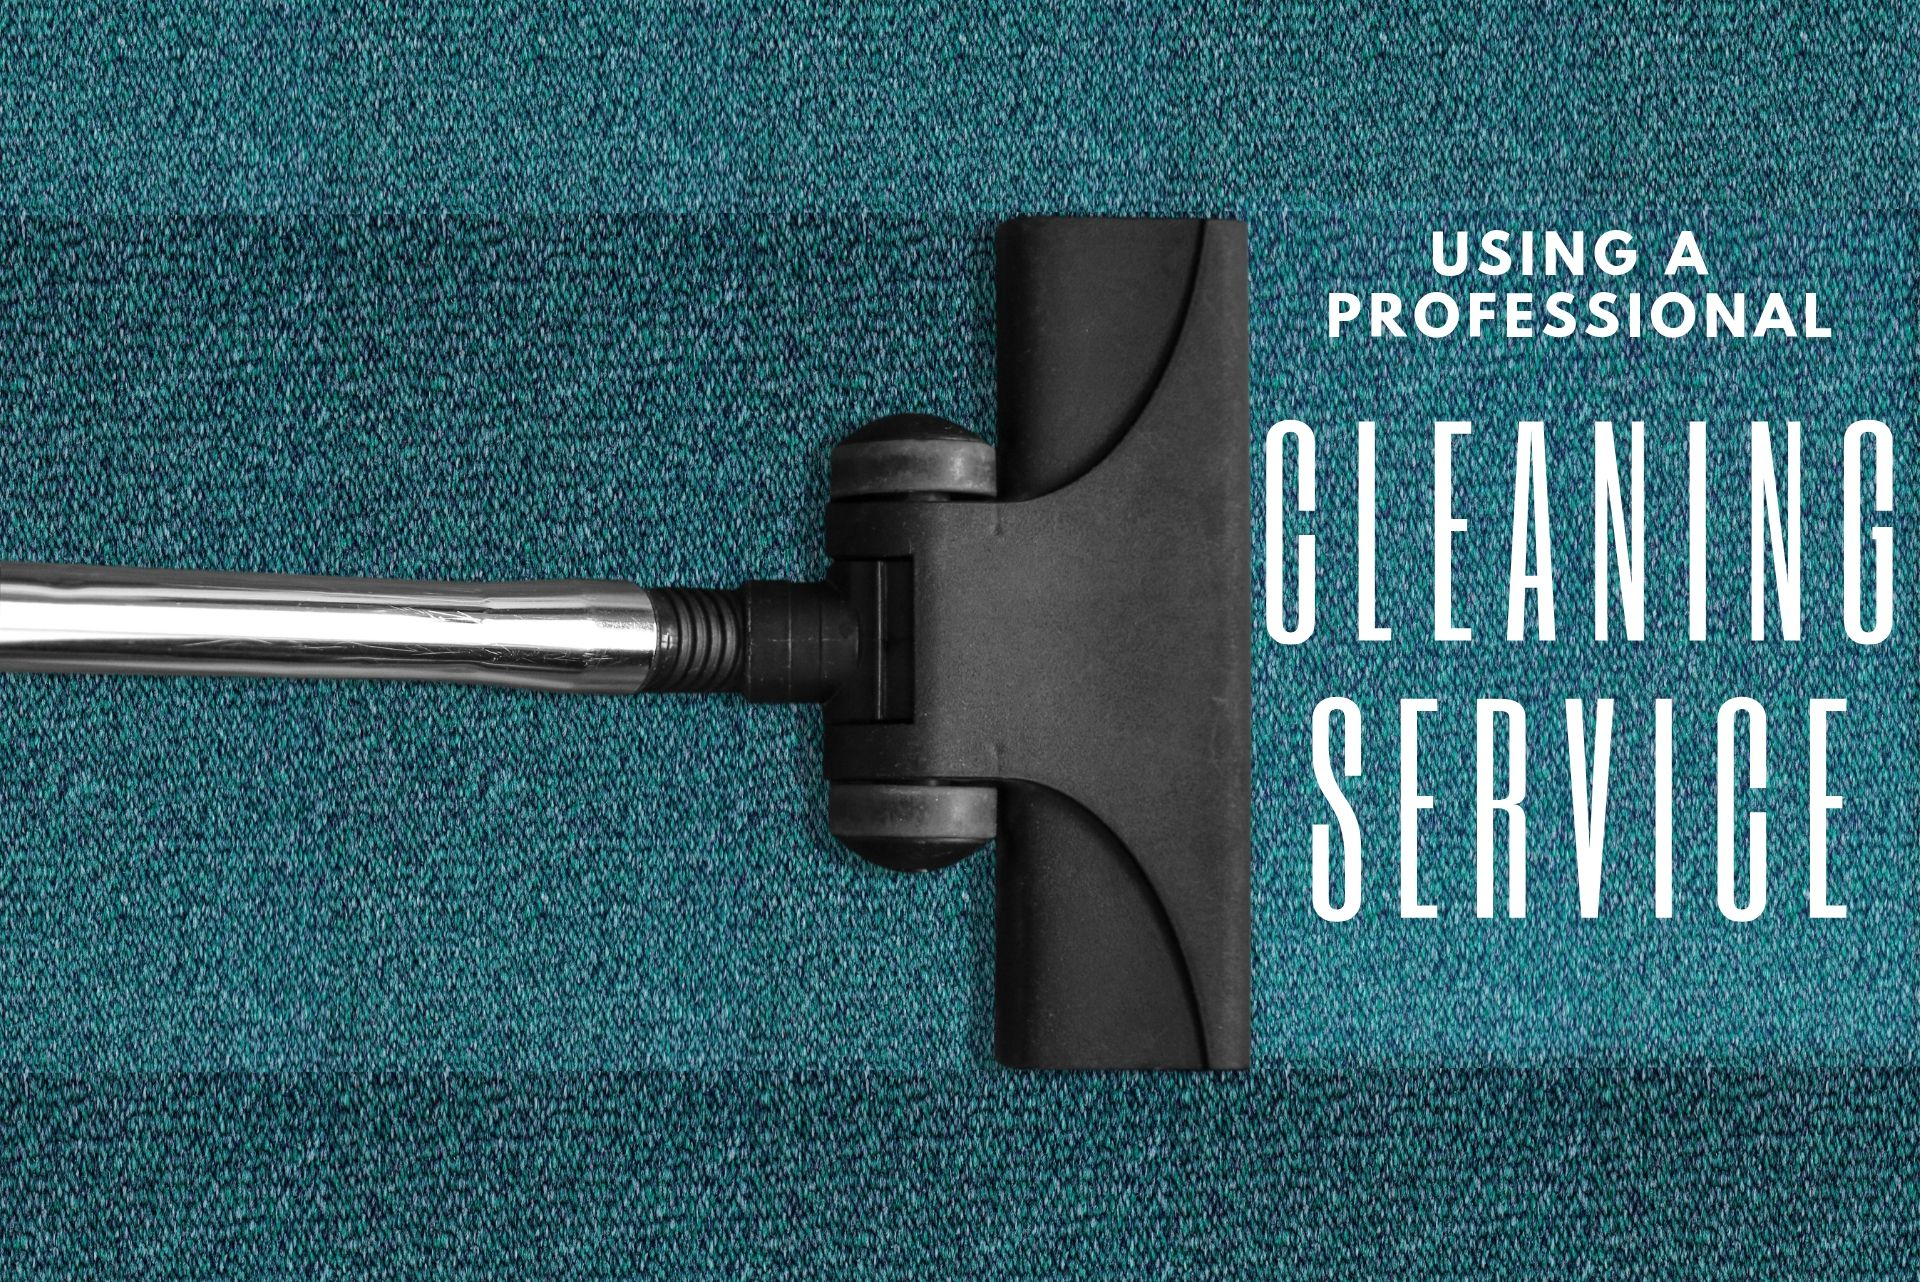 Using professional carpet cleaners